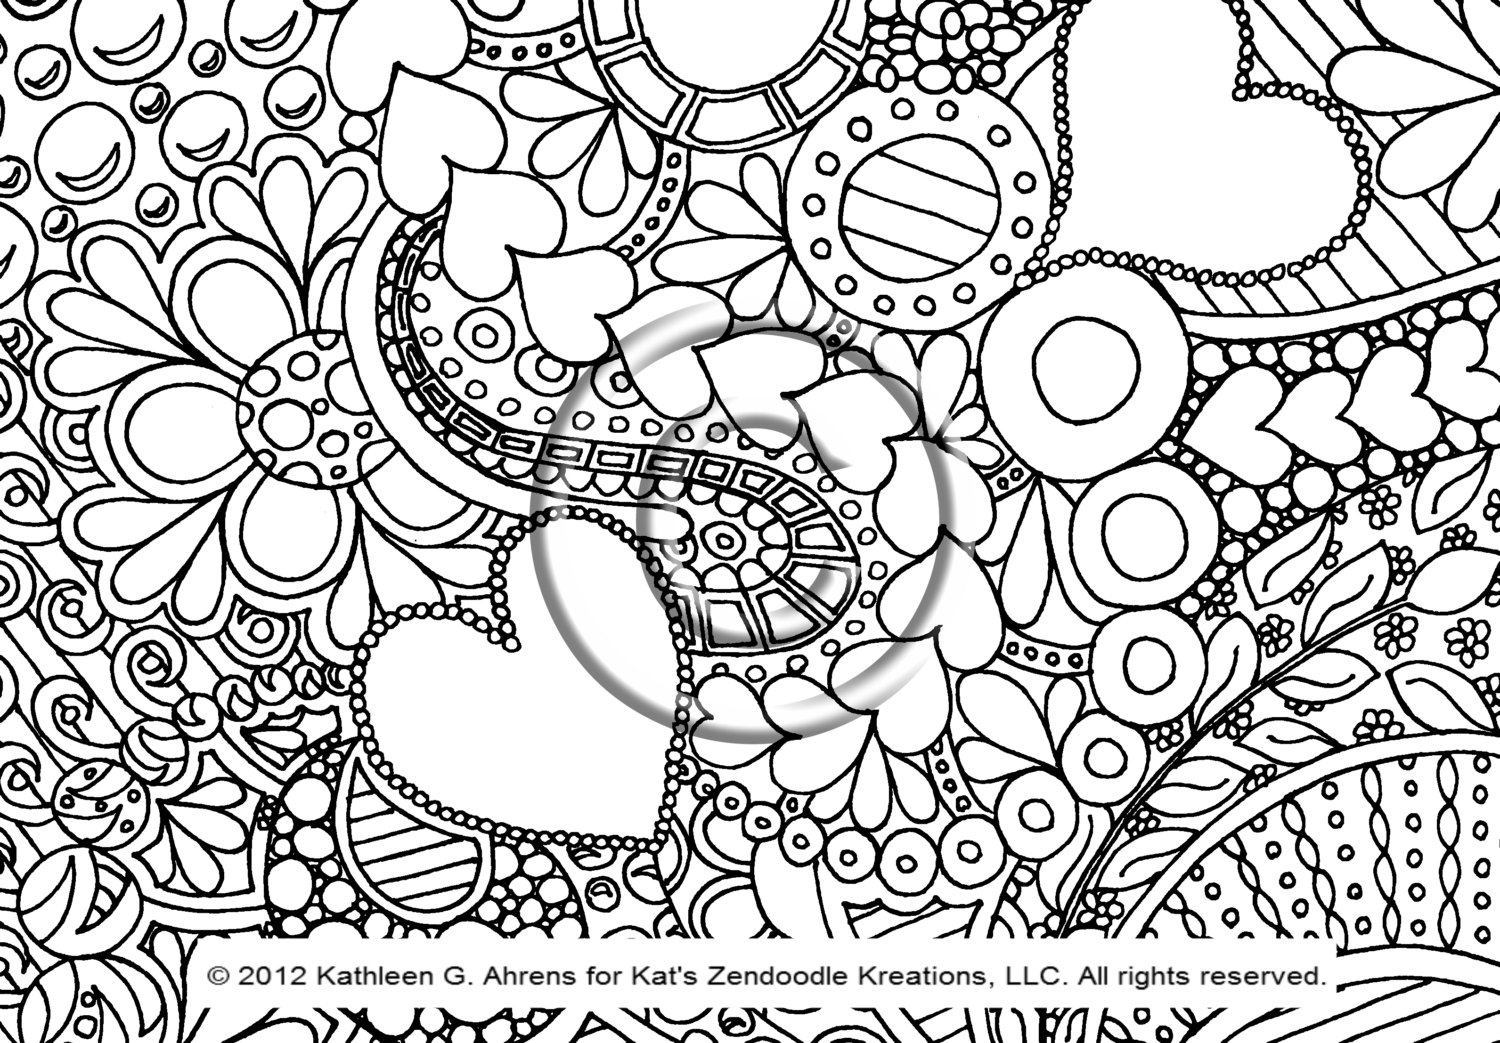 detailed coloring sheets detailed coloring pages to download and print for free coloring detailed sheets 1 1